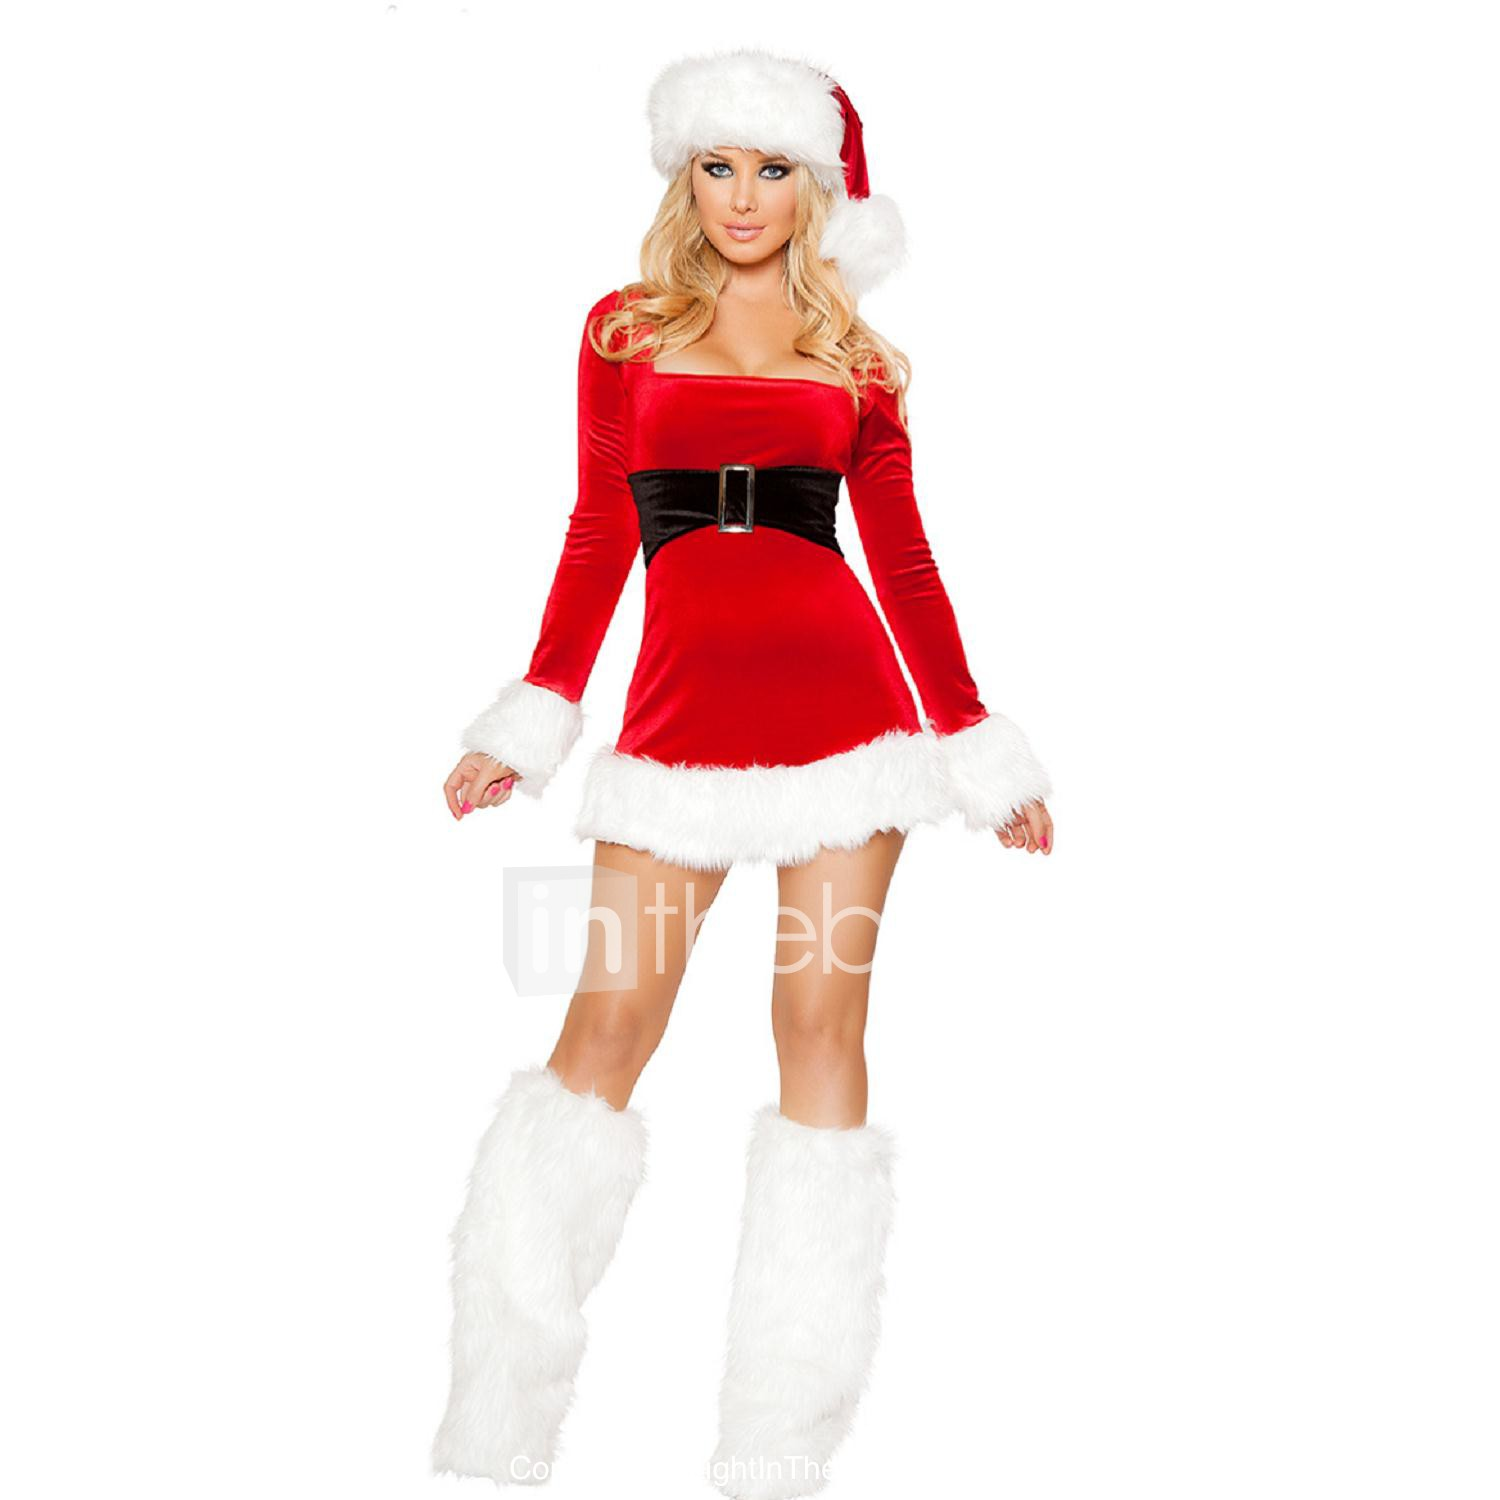 5622c5d3ae75a Mrs.Claus Cosplay Costume / Santa Clothes Christmas Women's Red Terylene  Cosplay Accessories Christmas / Carnival Costumes